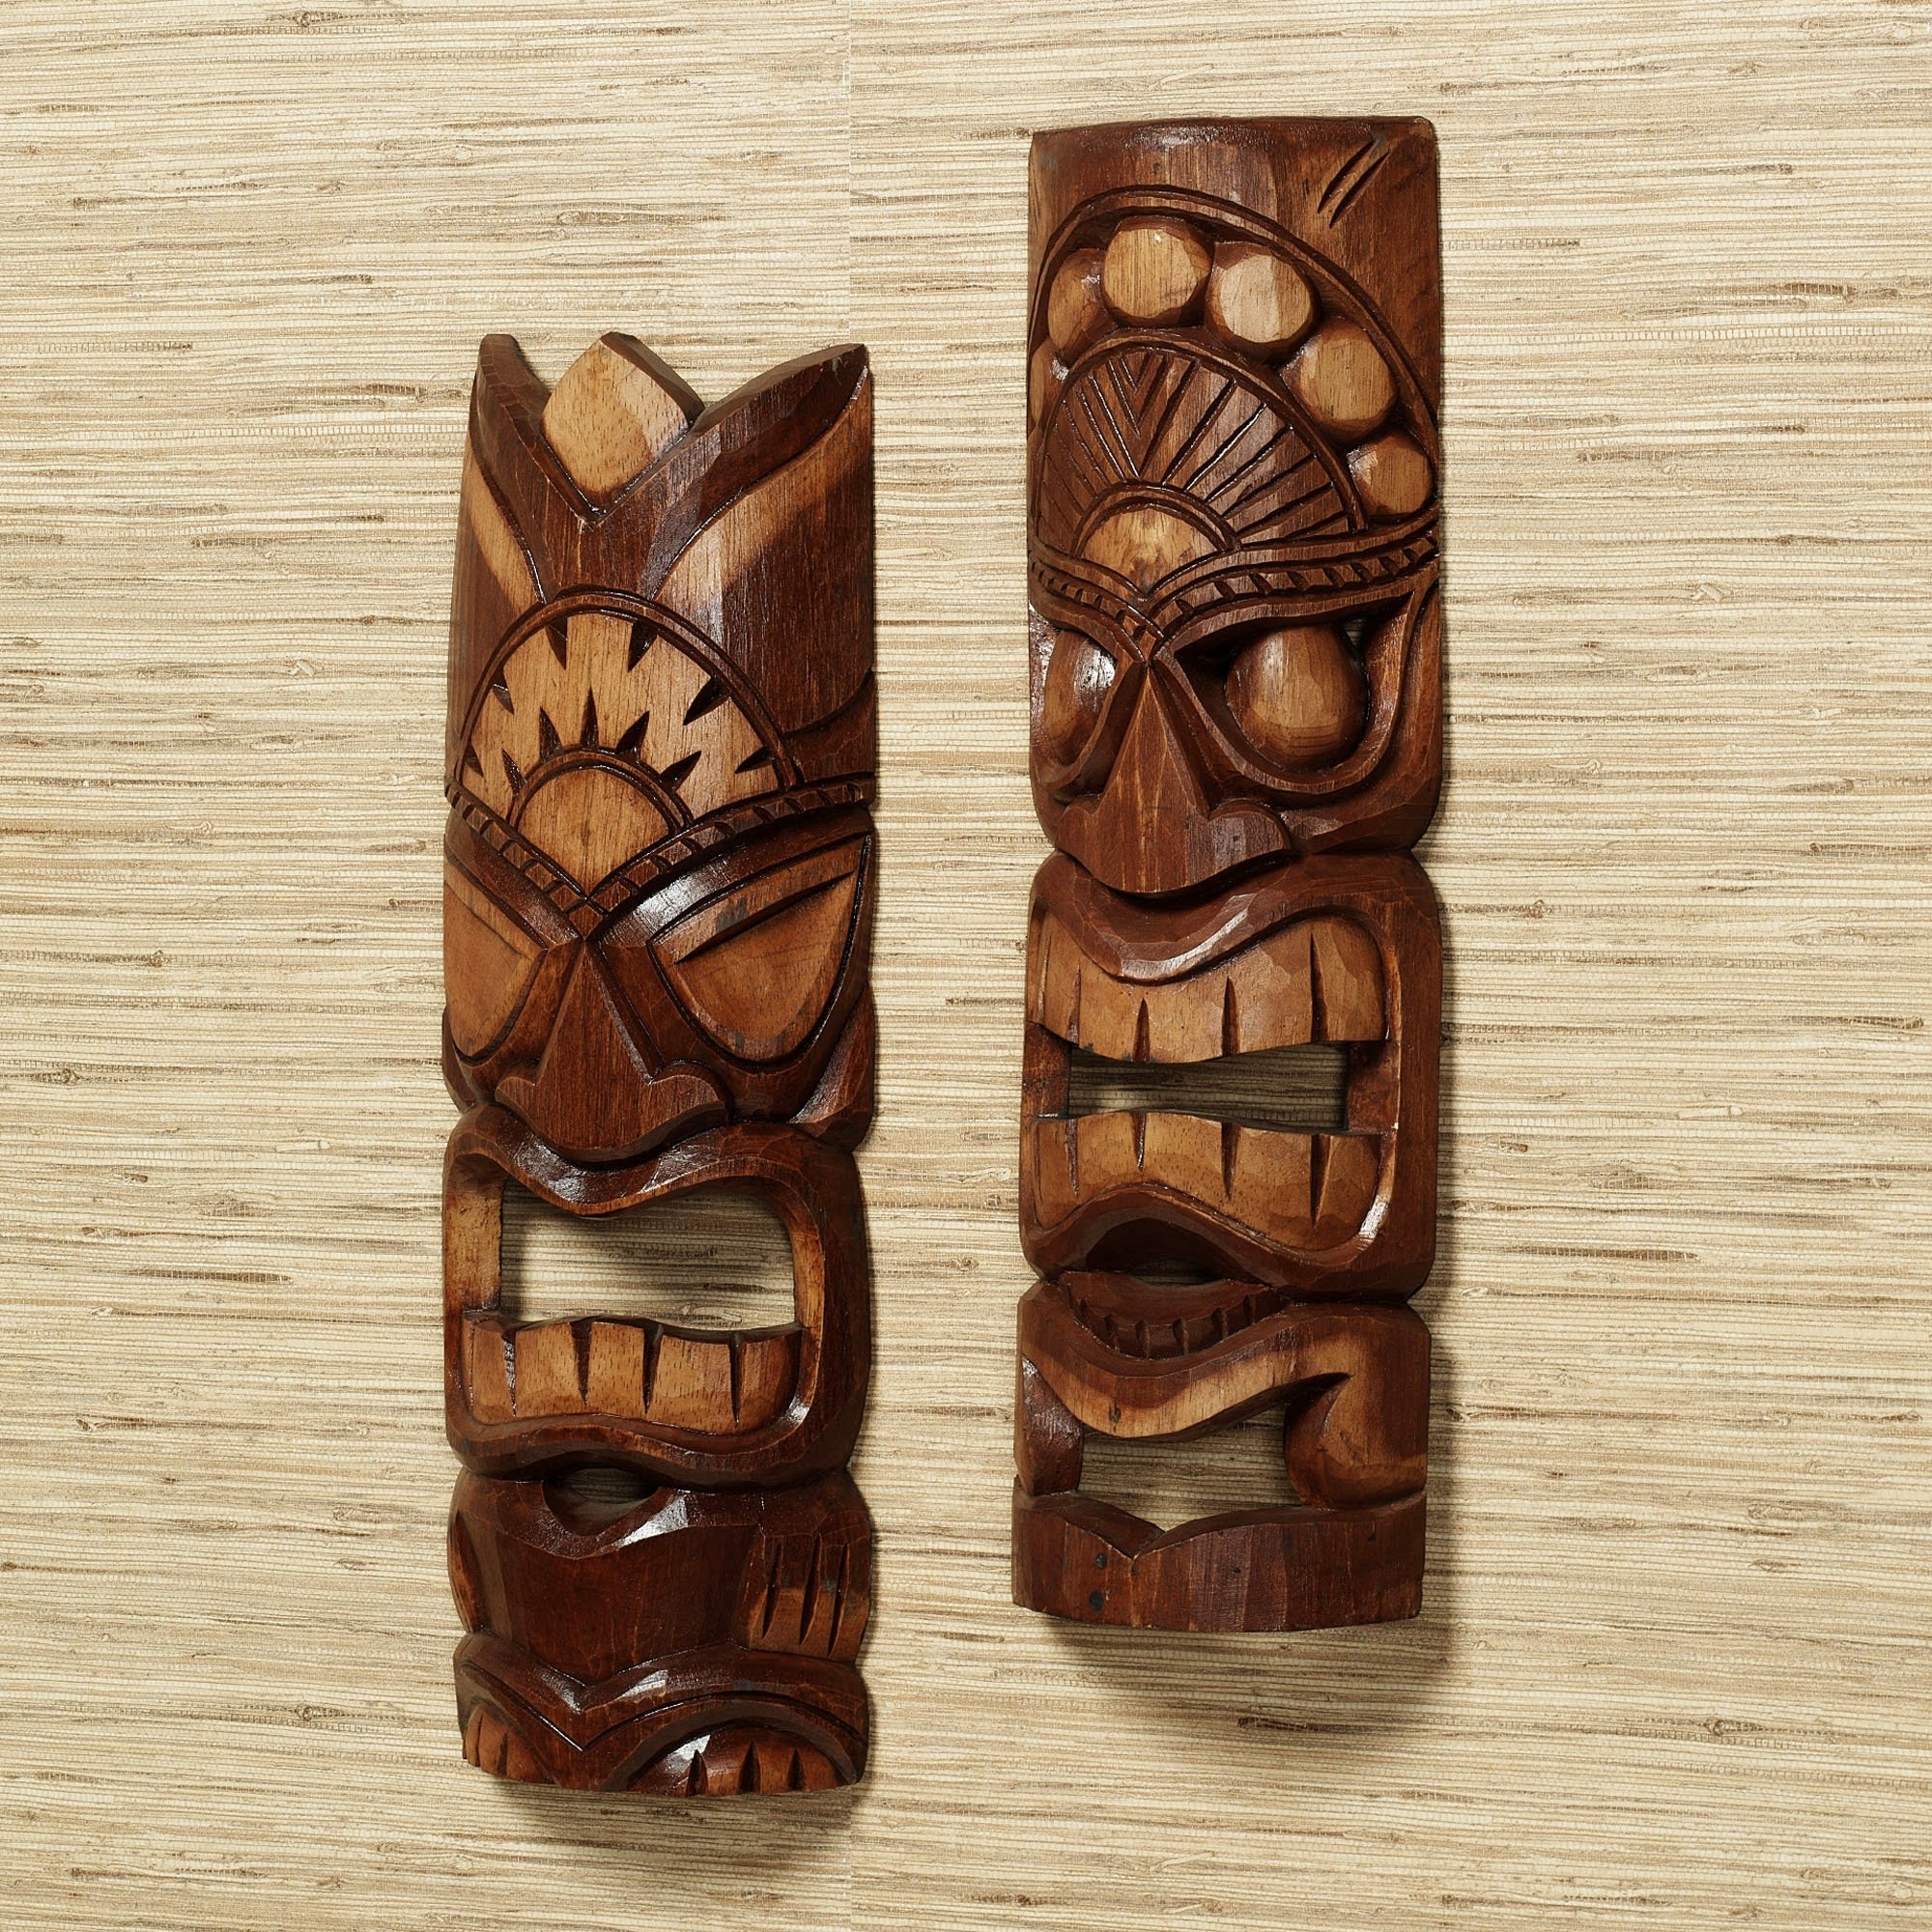 Wooden Tribal Mask Wall Art Throughout Most Current Wooden Tribal Mask Wall Art (View 15 of 15)